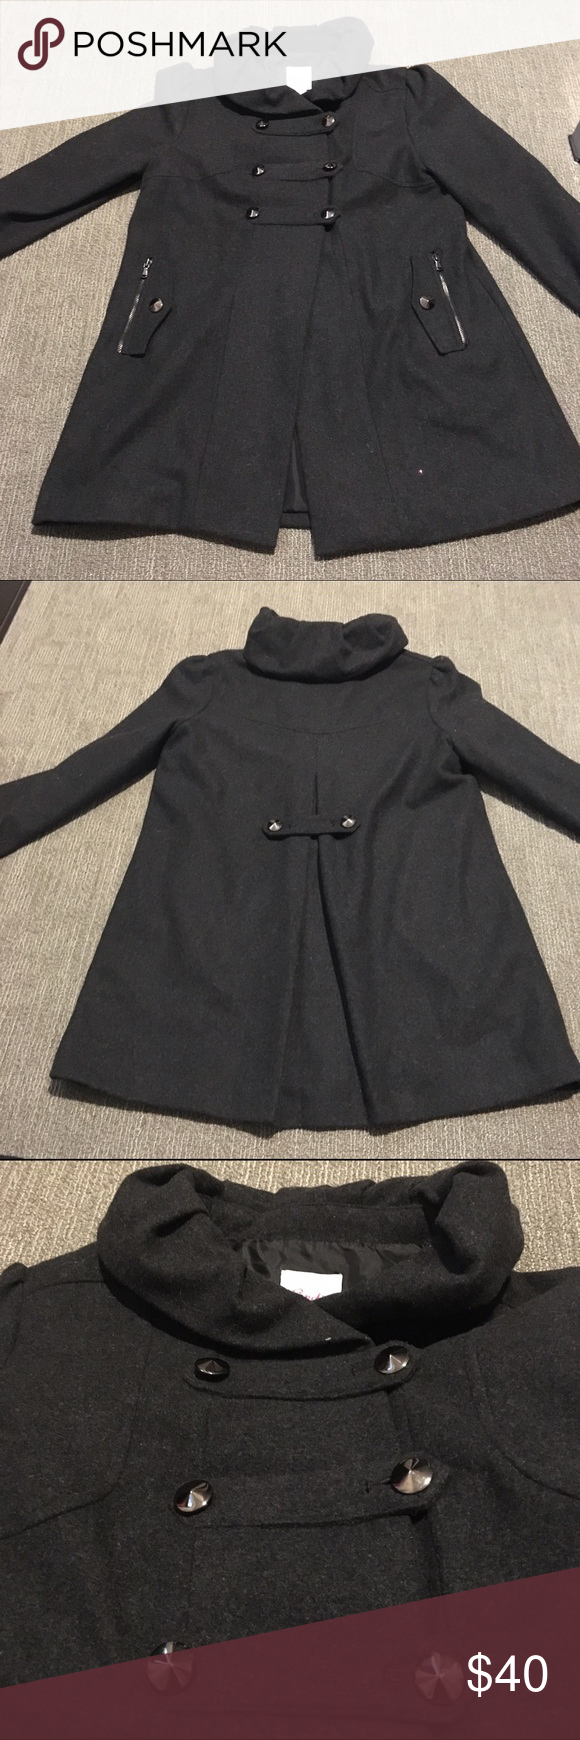 NWOT Candie's Military Pea Coat NWOT Candie's Military Pea Coat. Size L. Never worn. Perfect condition. Three button closure. Zippered pockets. Pleated in the back. Ruffled collar and shoulders. Gray/Silver Hardware. Candie's Jackets & Coats Pea Coats